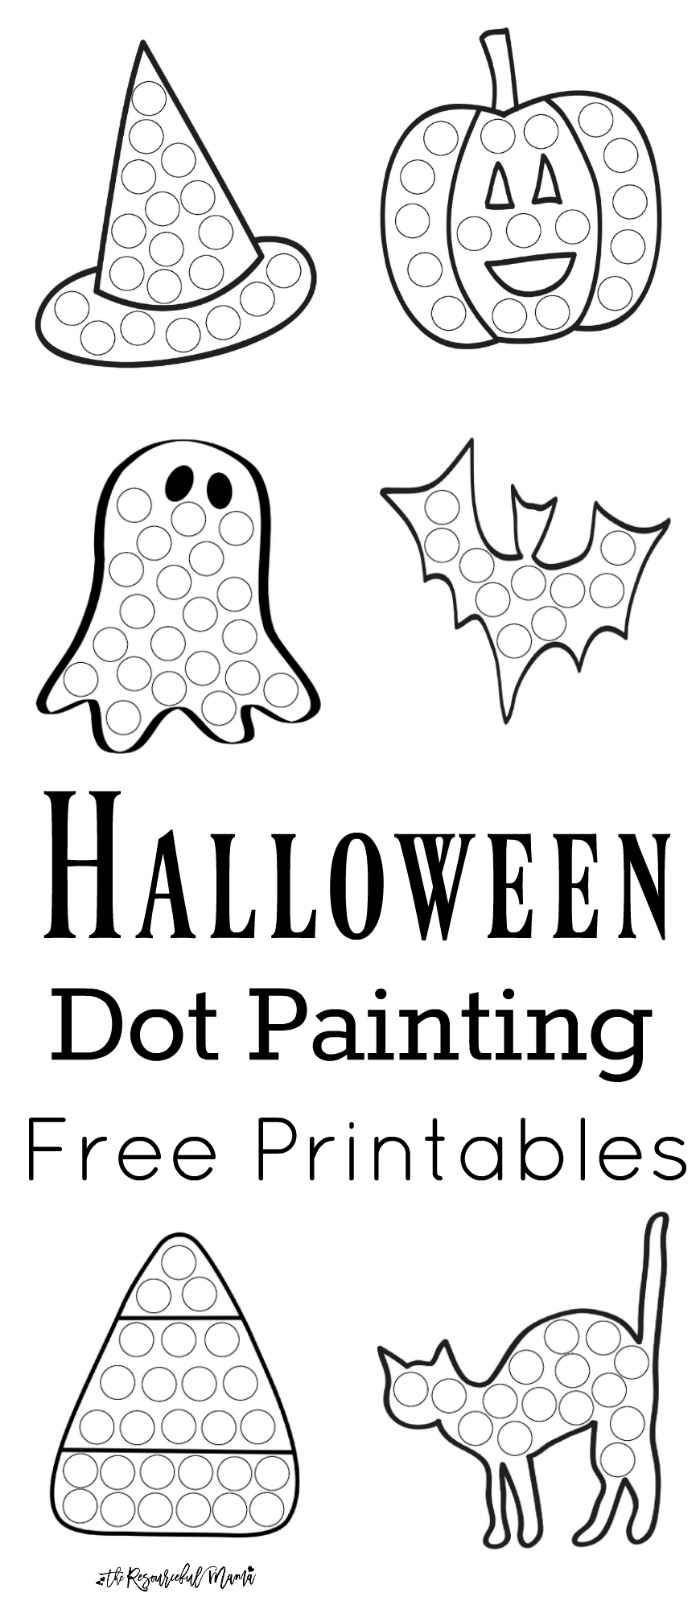 Halloween Dot Painting Free Printables The Resourceful Mama – Halloween Fun Worksheets